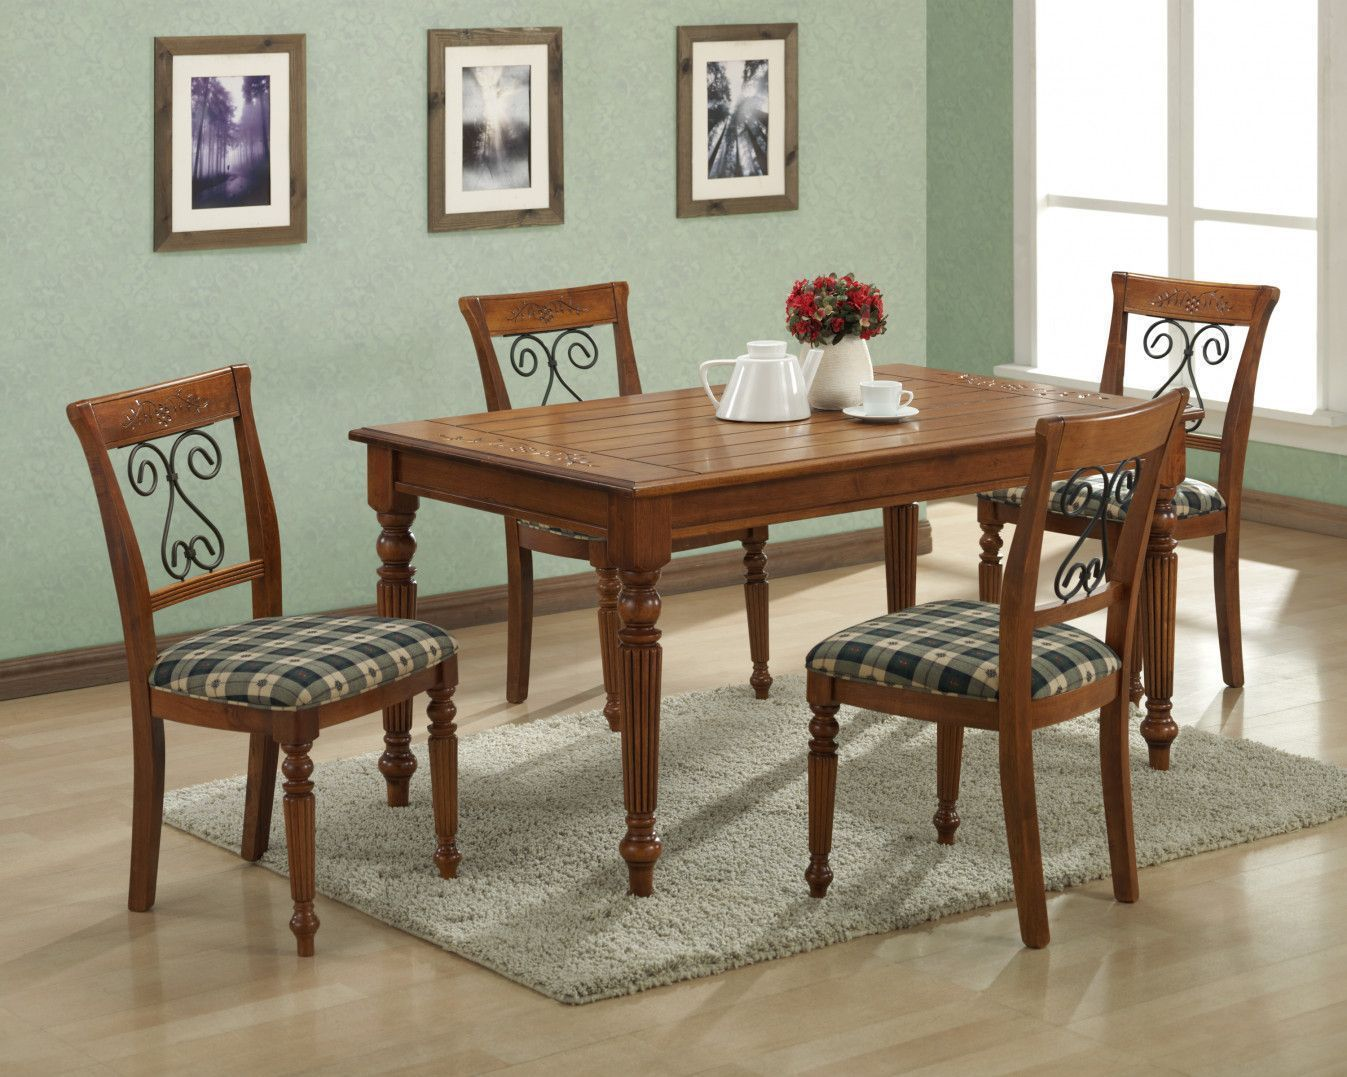 dining room chair pads. 50+ Dining Room Chair Cushions And Pads - Modern Affordable Furniture Check More At Http C